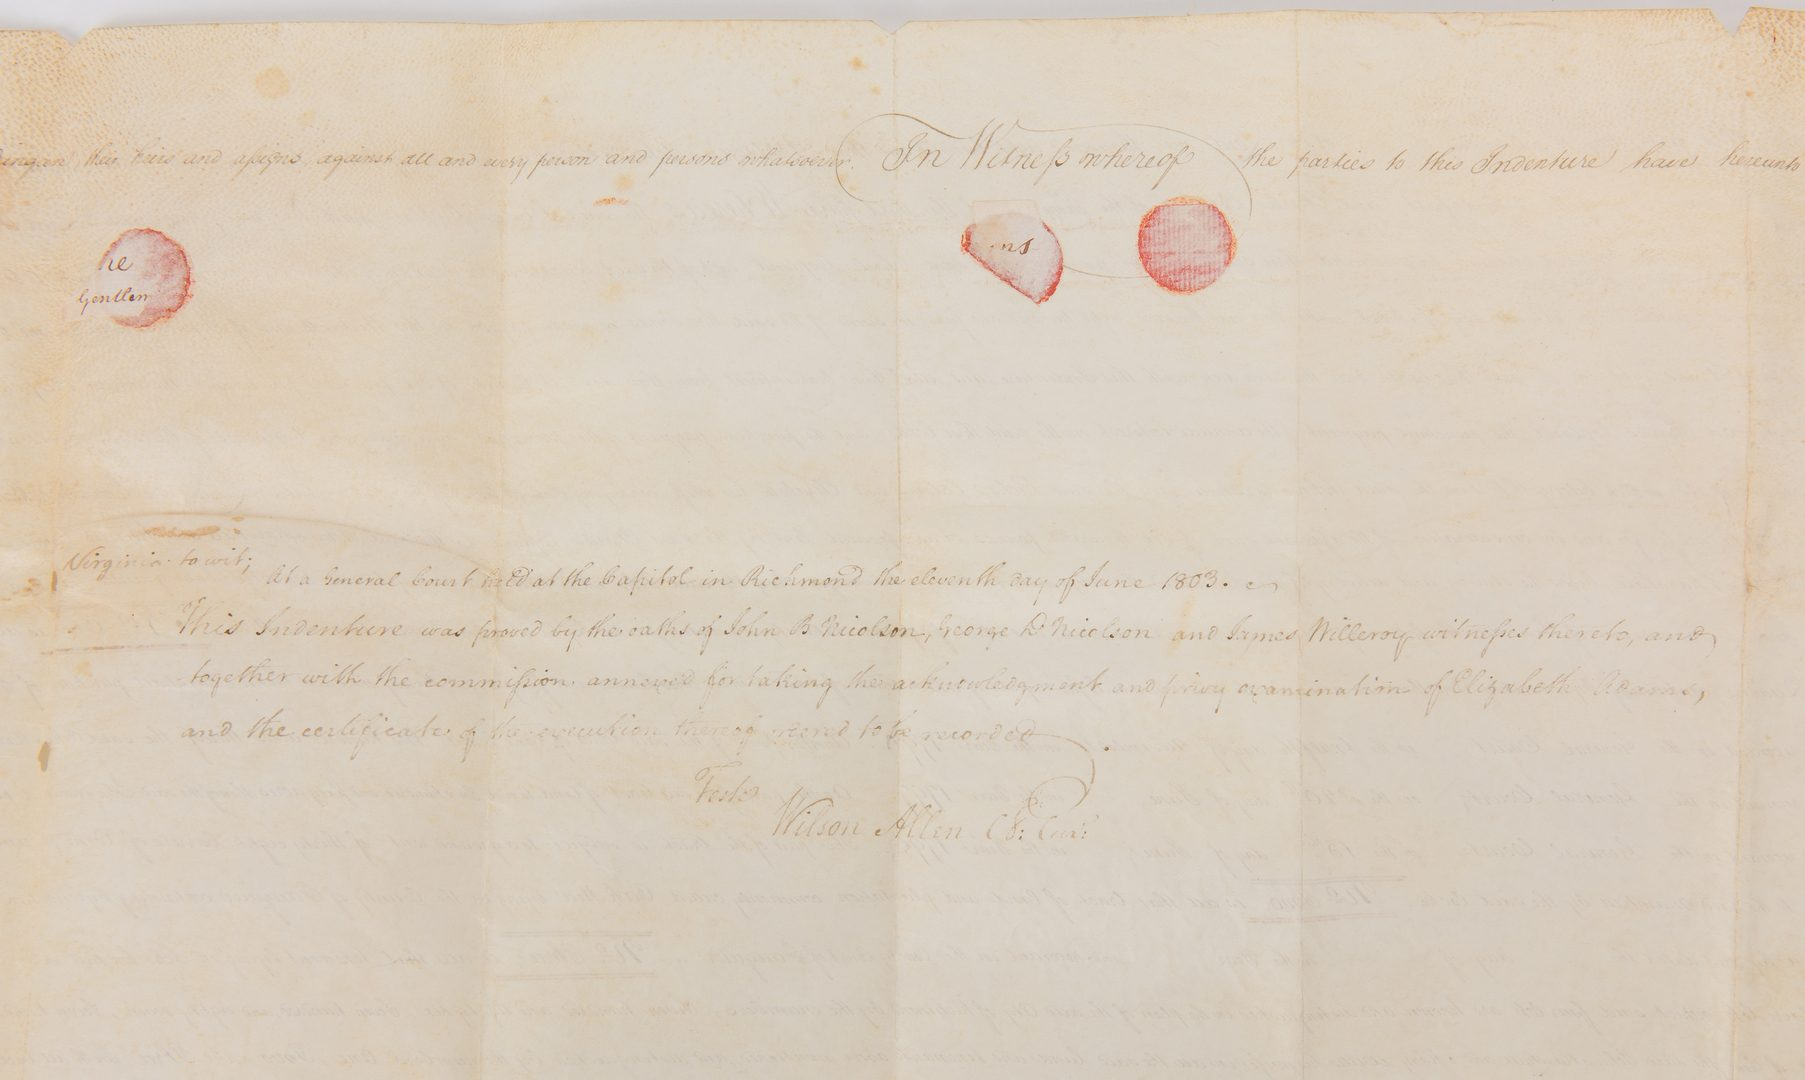 Lot 258: J. Marshall, R. Adams, J. Wickham Indenture, 1803